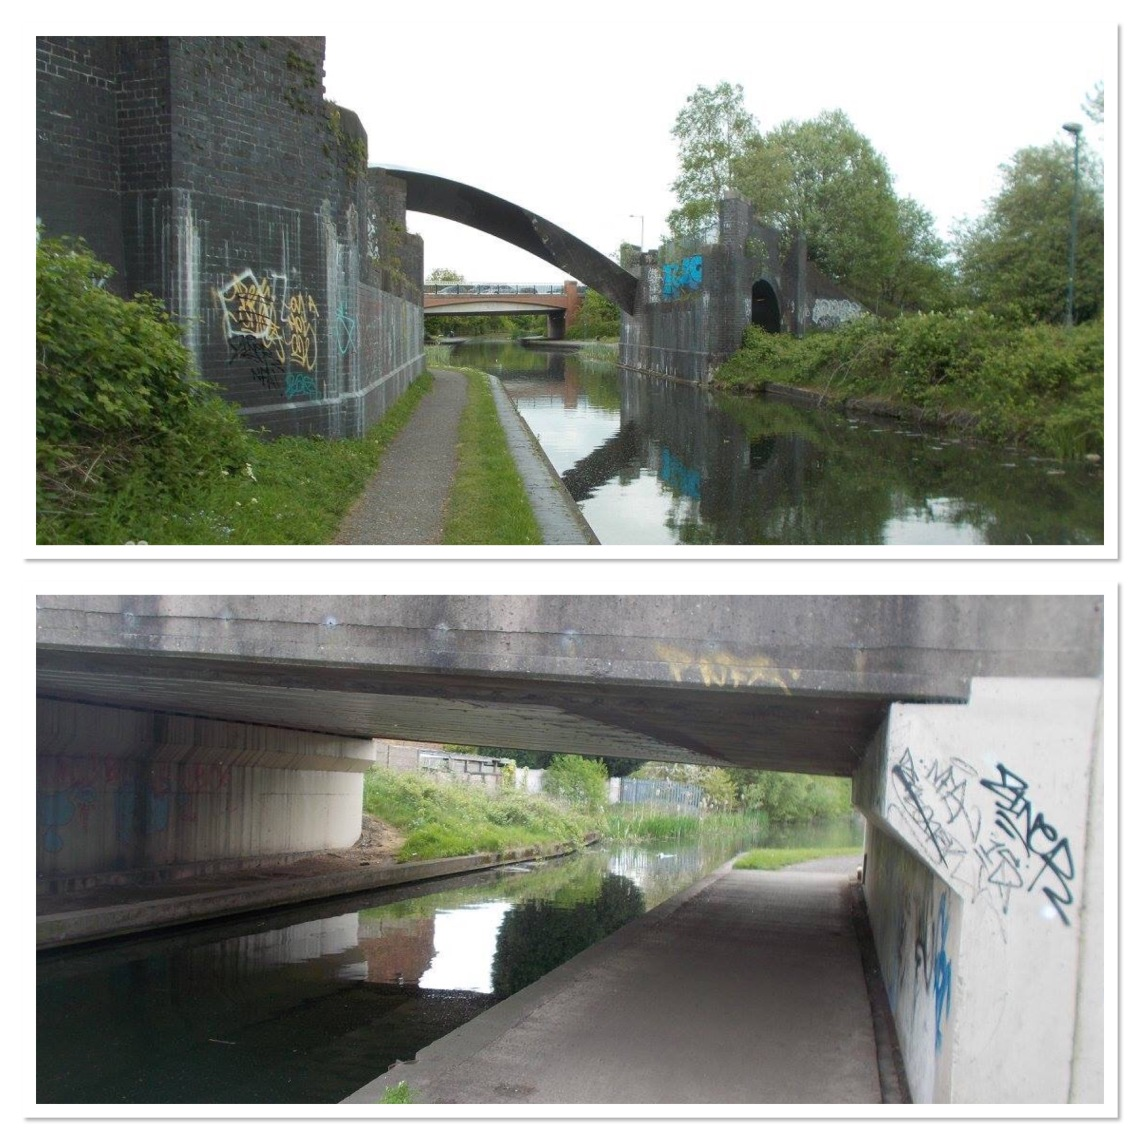 An urban canal session in Wolverhampton